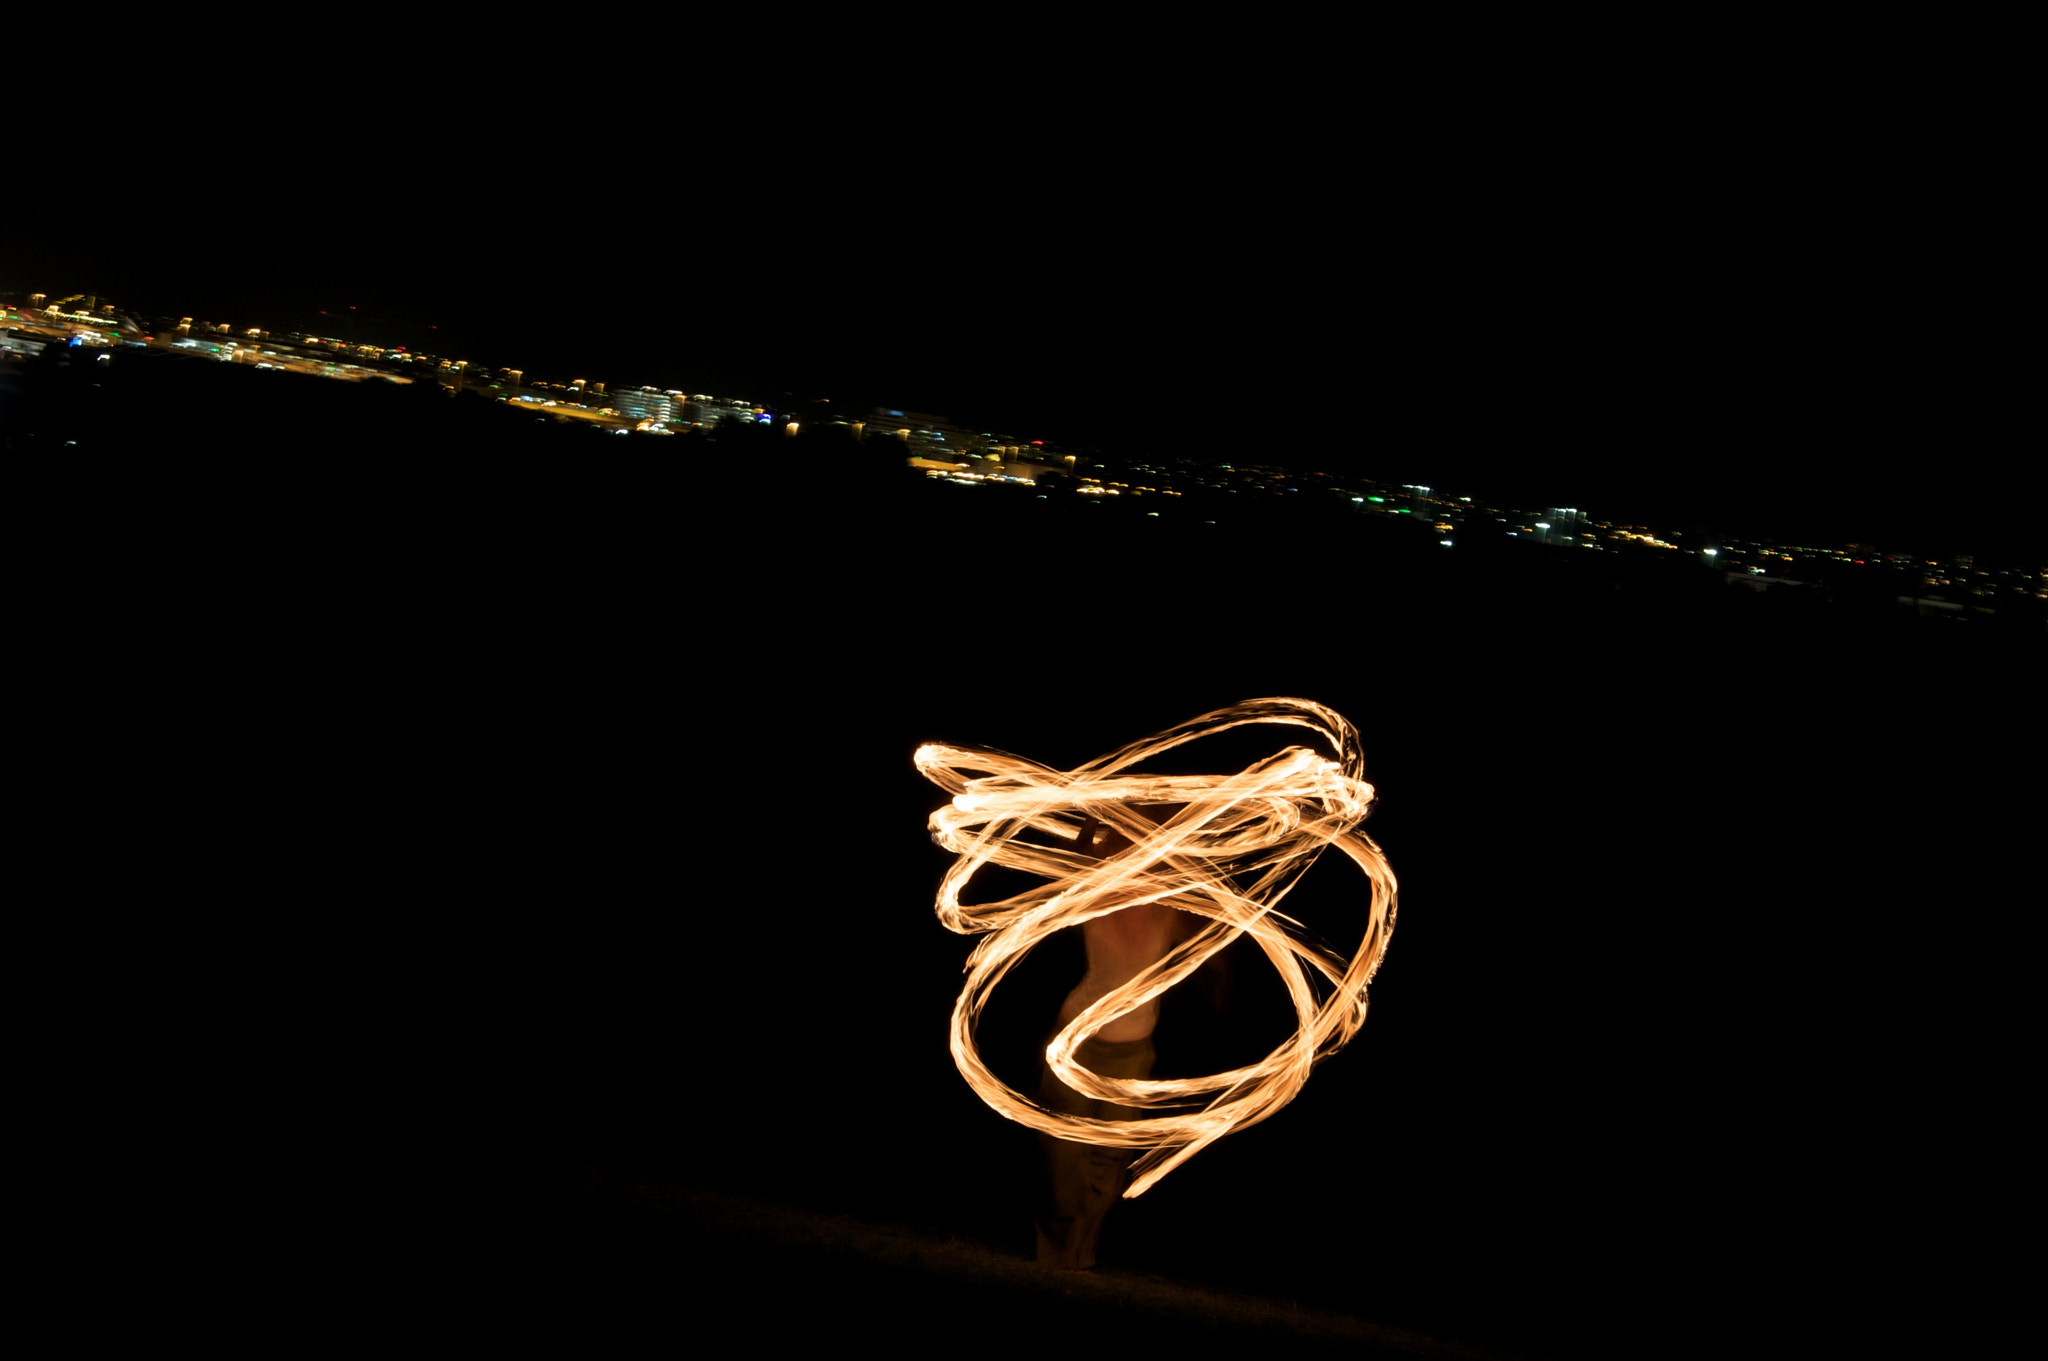 Photograph Fire act in Sydney Park 2 by Scott Kim on 500px